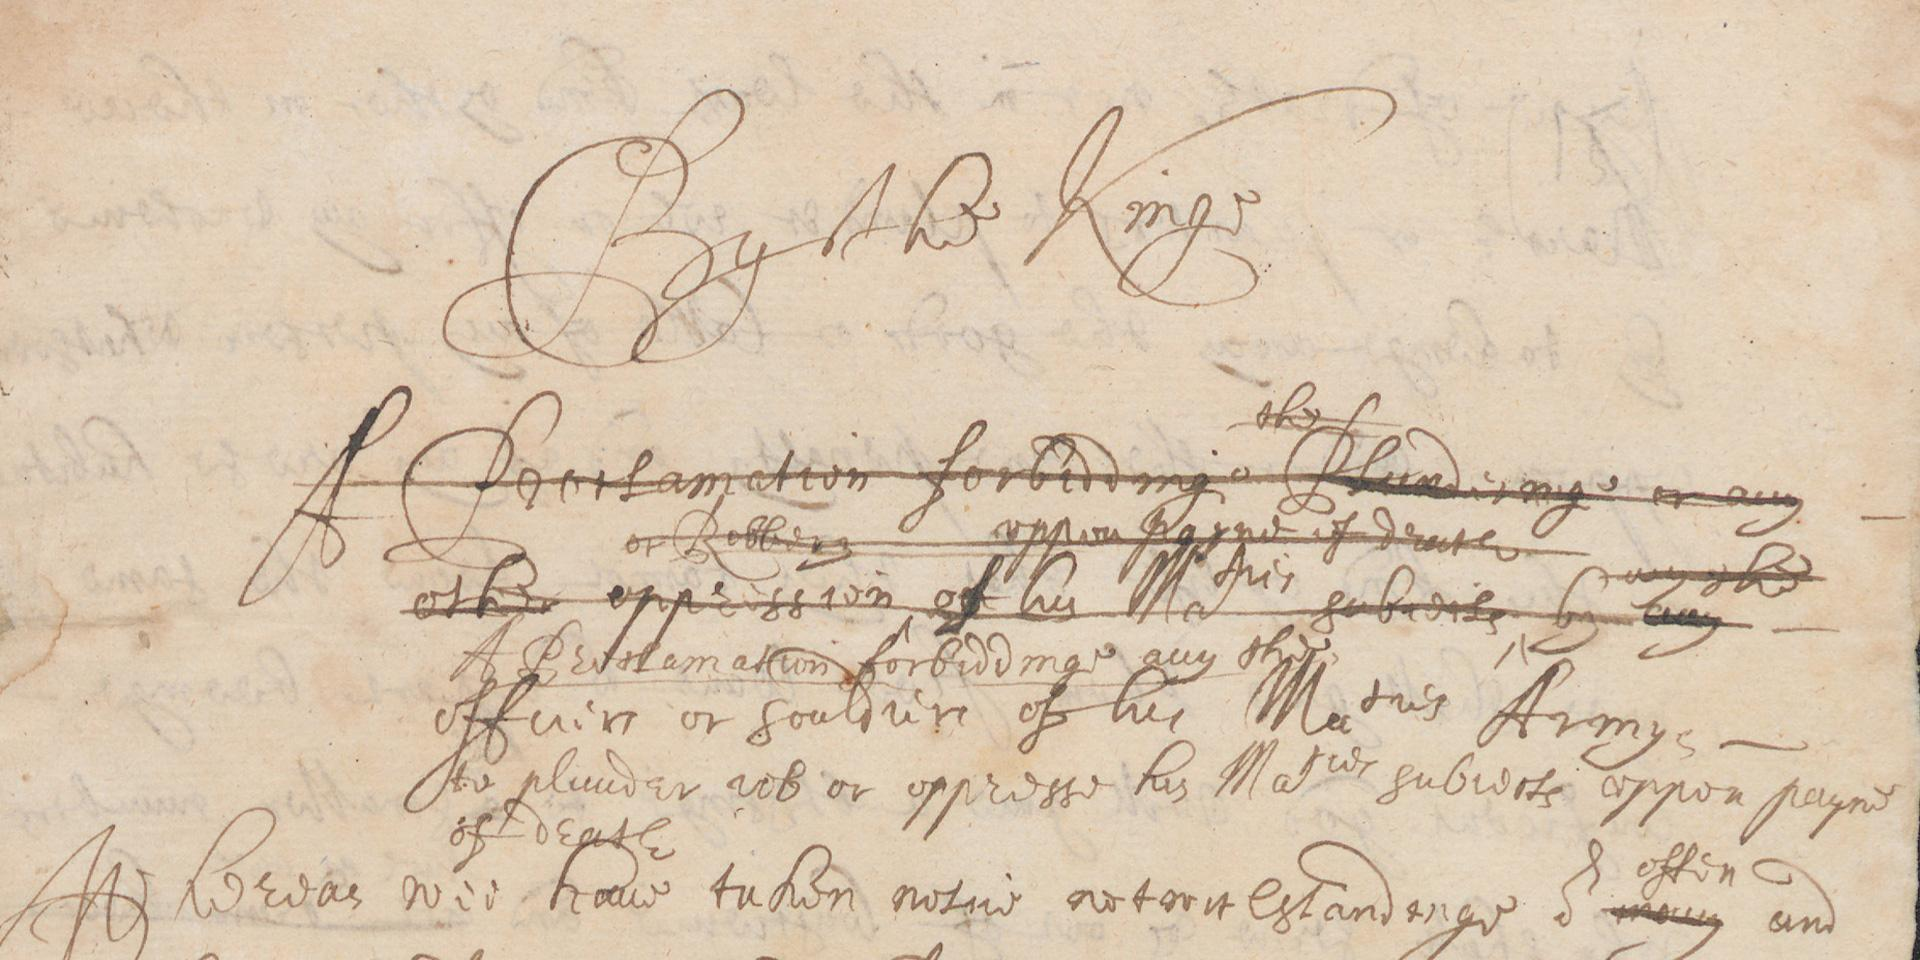 Draft proclamation written by Edward Walker,  which forbids plundering, robbery and oppression of the King's subjects on pain of death, 1644.